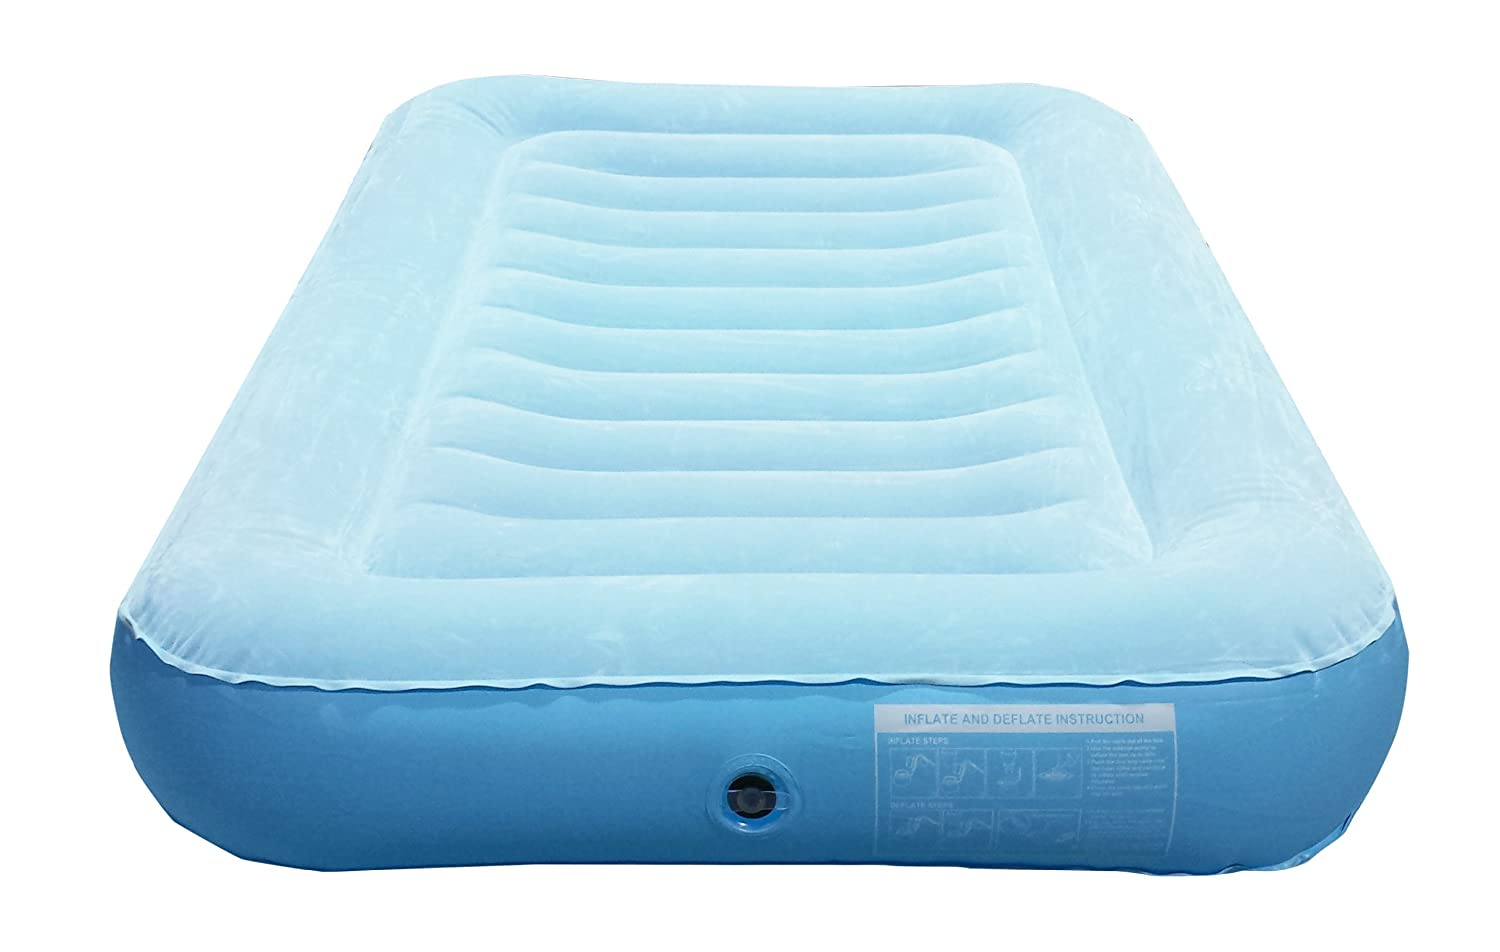 Top 10 Best Inflatable Travel Beds For Kids Reviews 2019